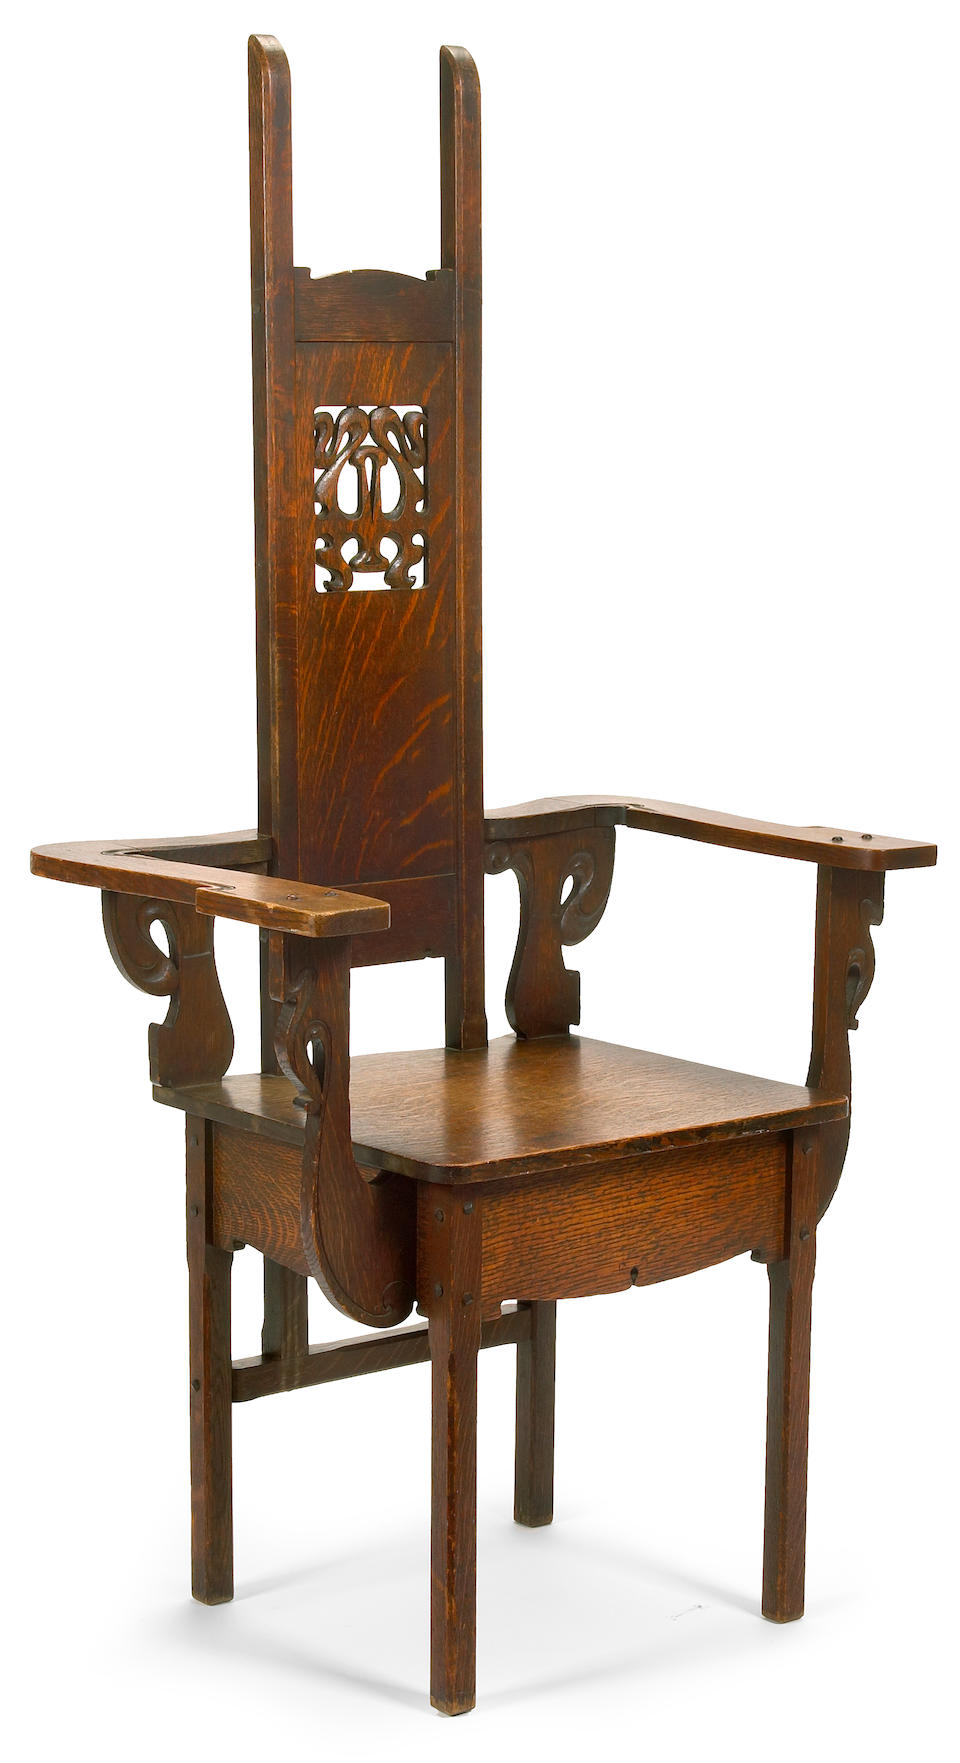 A Charles Rohlfs carved oak armchair